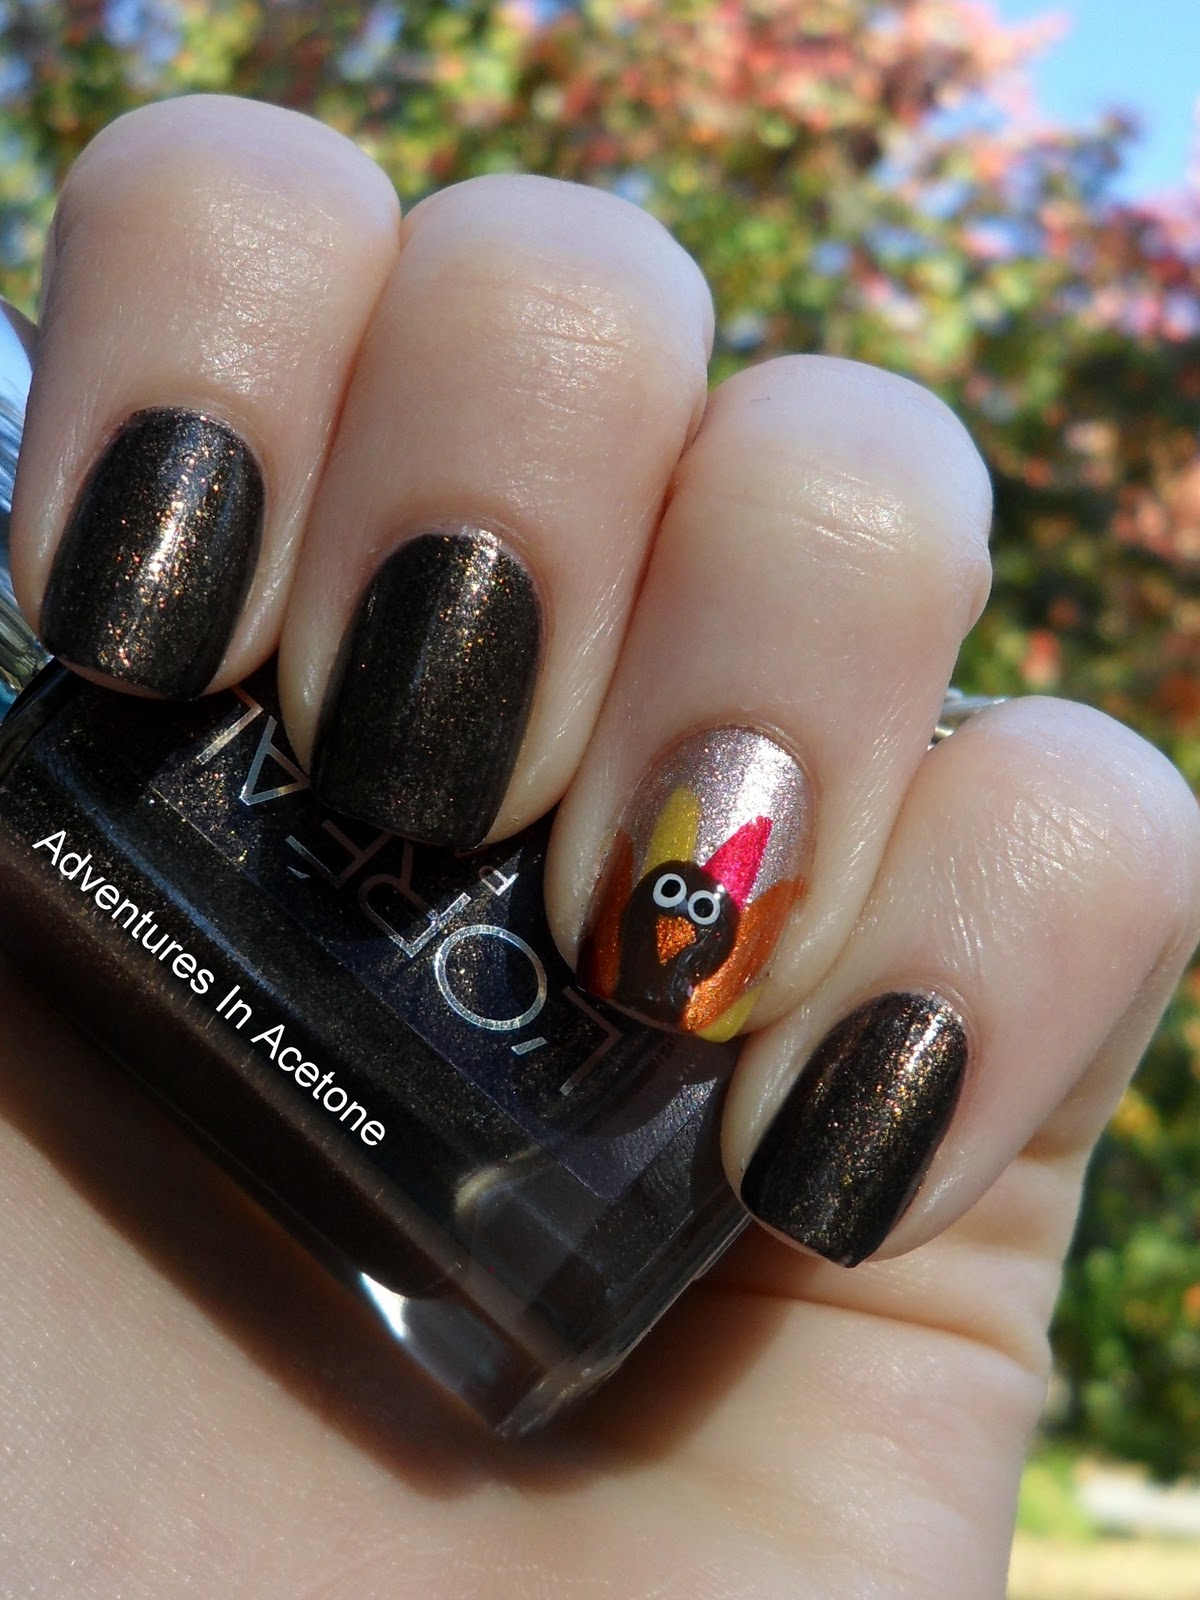 Turkey Nails + Tutorial! - Adventures In Acetone